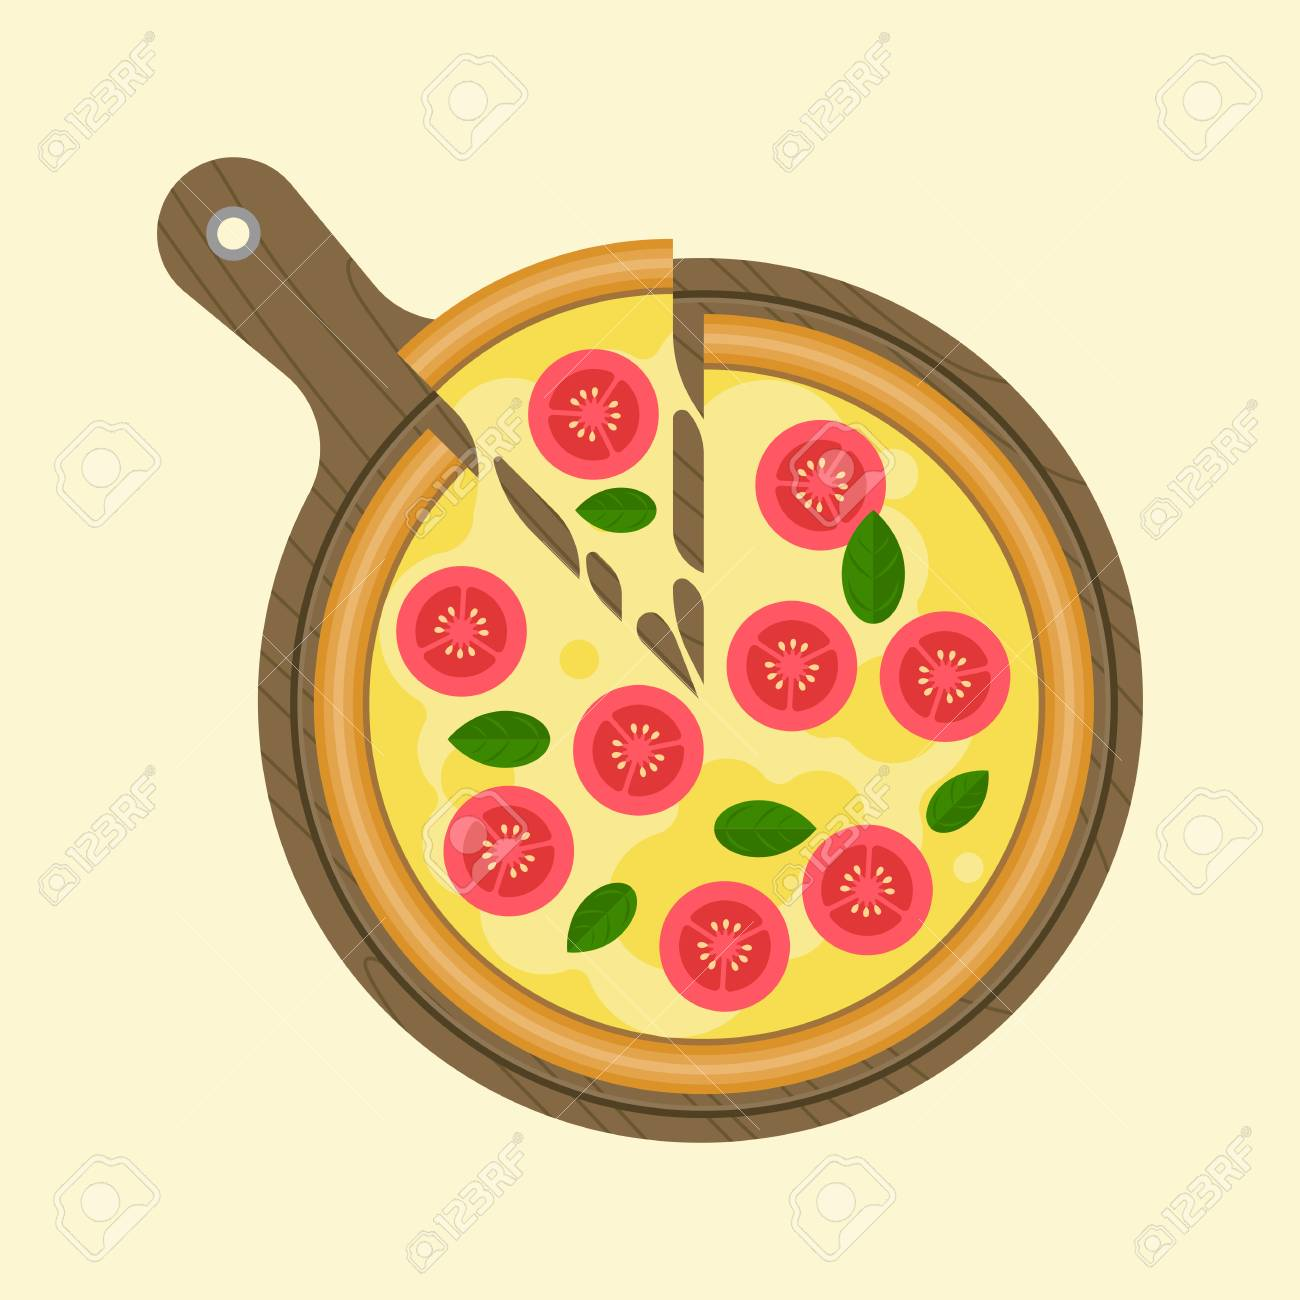 Margarita Pizza And Slice Of Piece On Wooden Tray Plate Flat Design Vector Stock